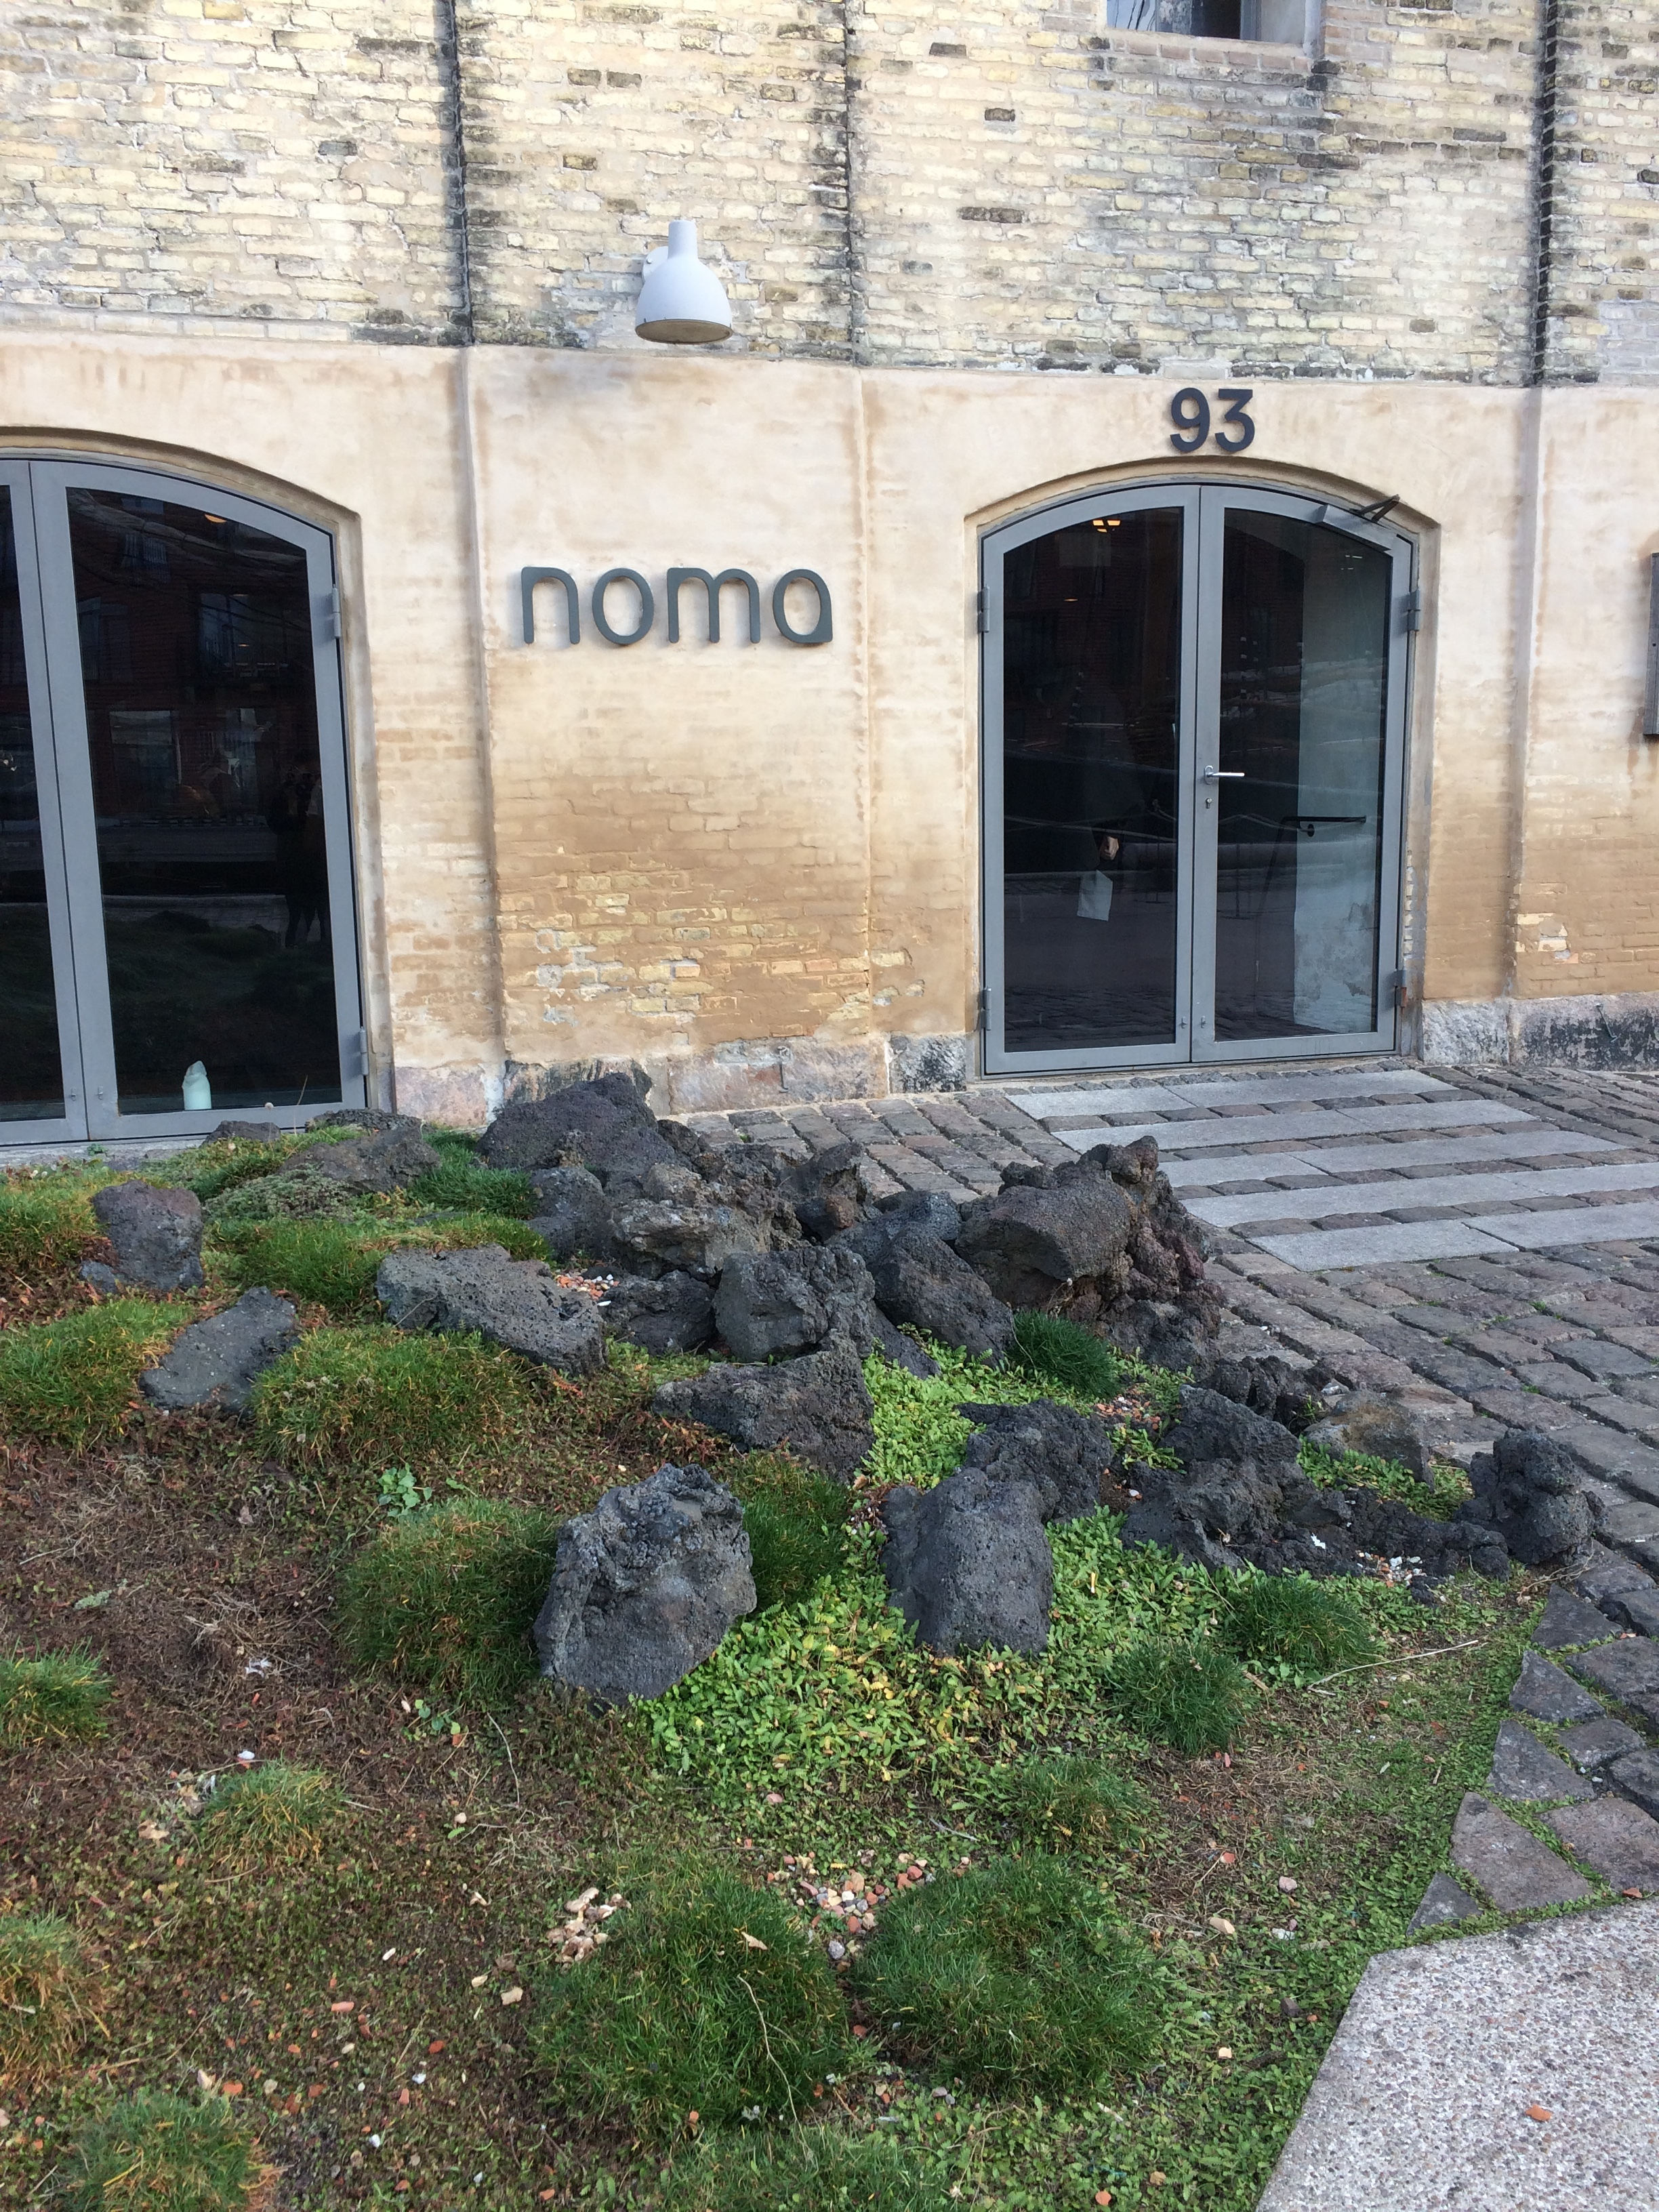 Noma in Copenhagen - My extended noma experience in Copenhagen (video included)